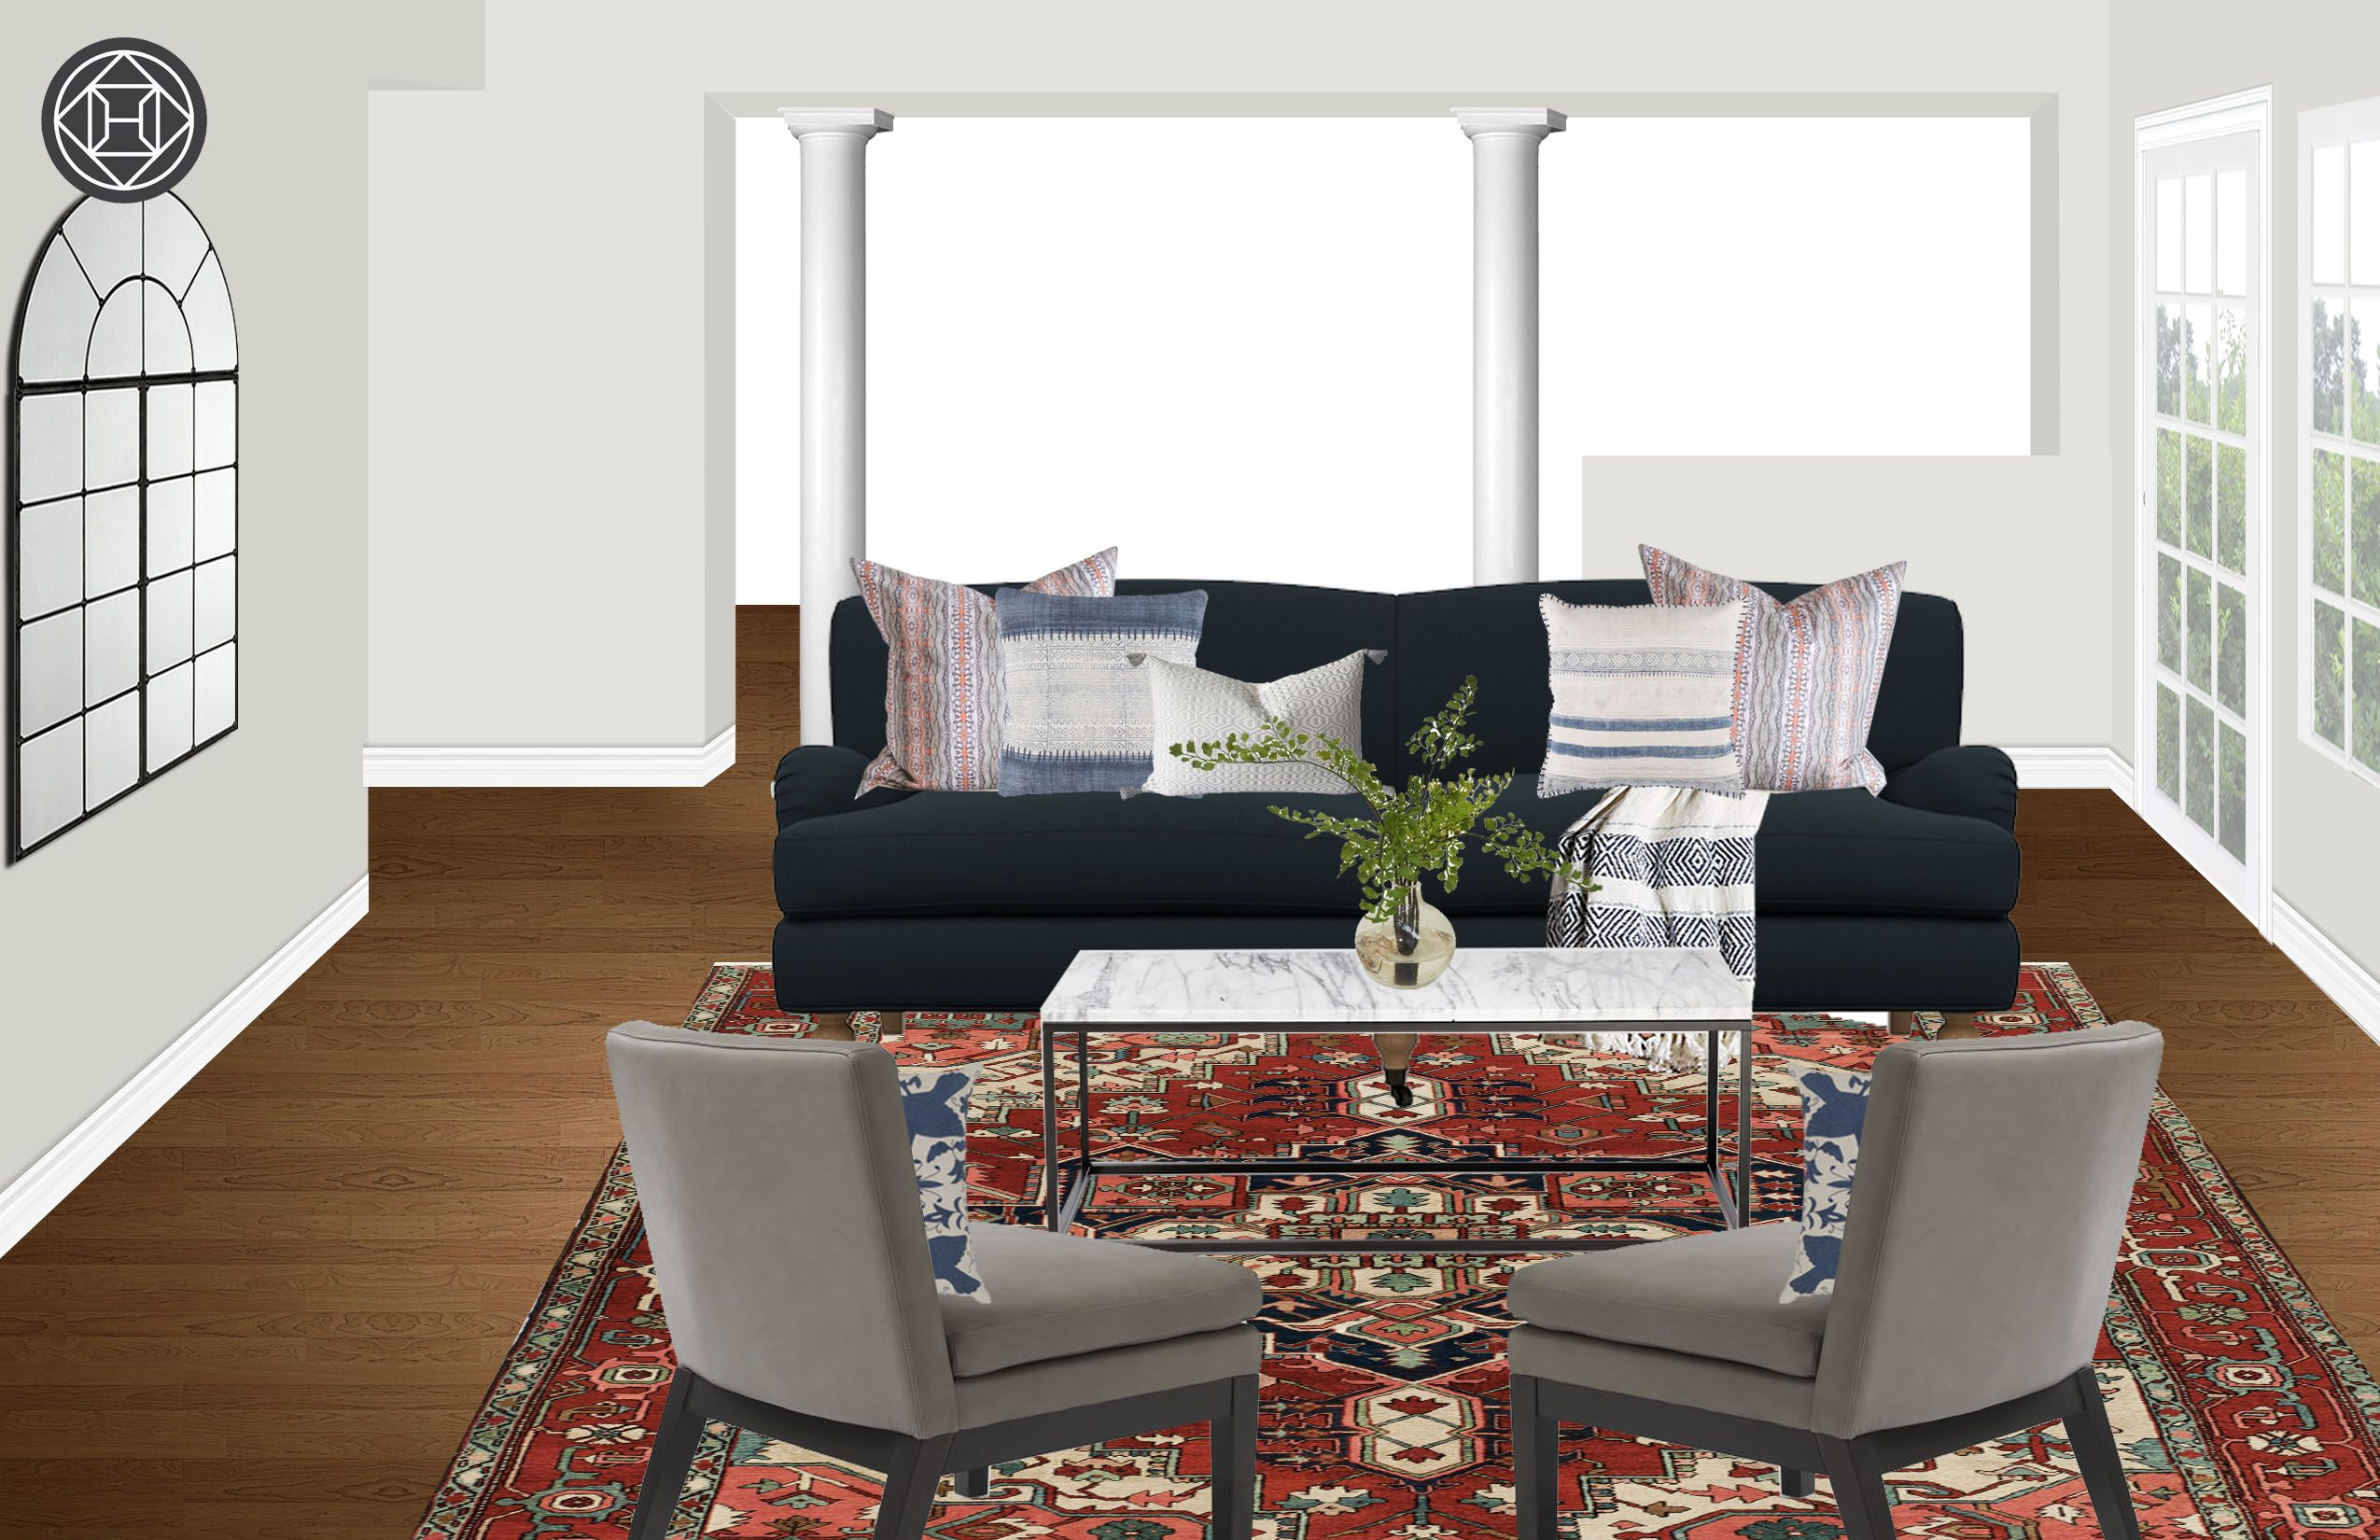 Warm & Cozy Havenly Living Room (With images) | Havenly ...